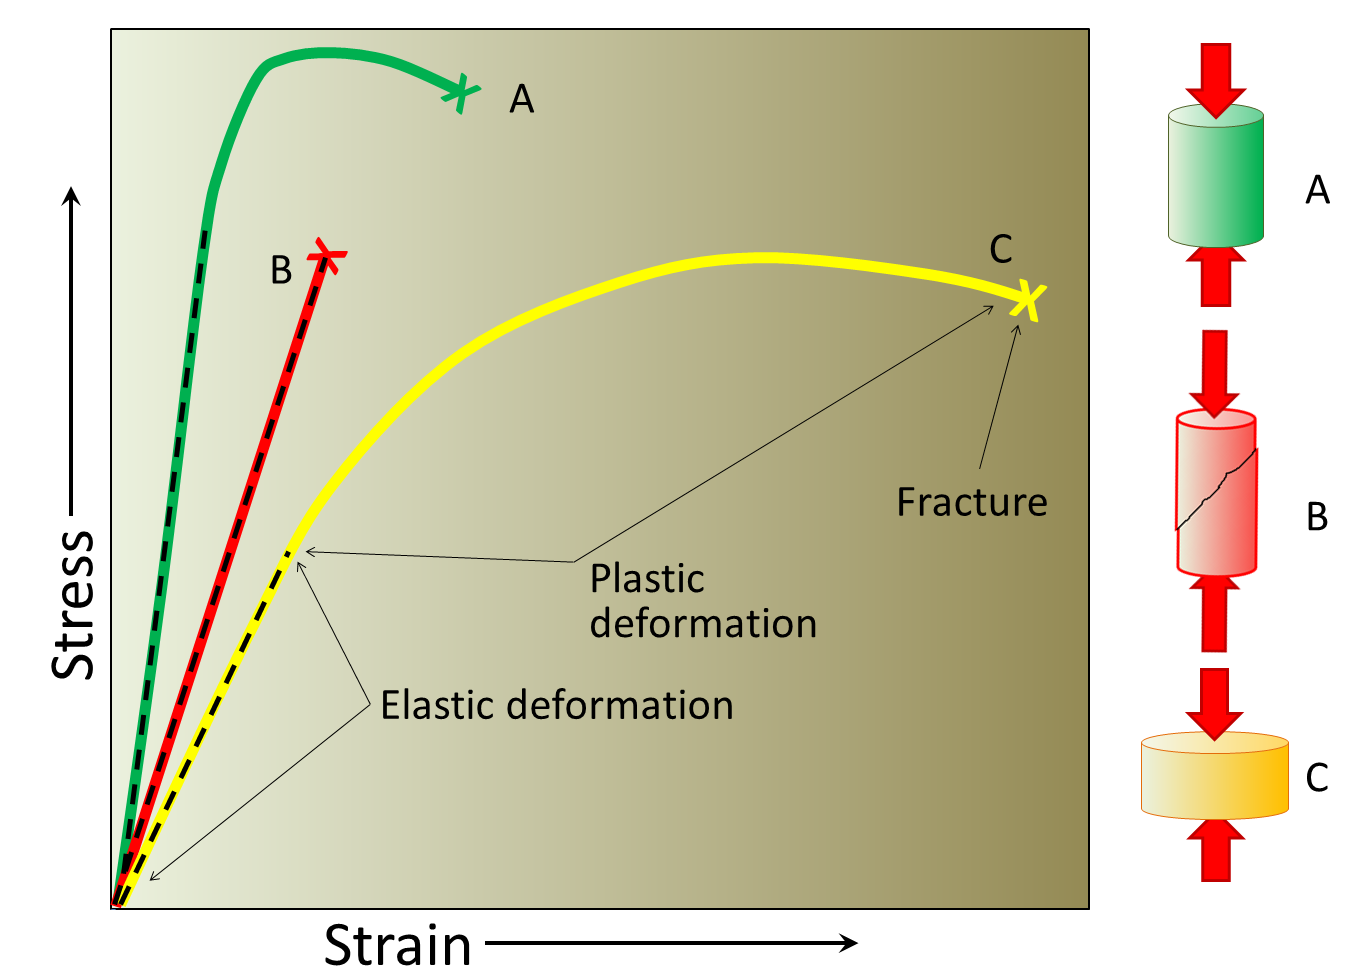 Figure 12.3 The varying types of response of geological materials to stress.  The straight dashed parts are elastic strain and the curved parts are plastic strain.  In each case the X marks where the material fractured.  A, the strongest material deforms relatively little and breaks at a high stress level.  B, strong but brittle, shows no plastic deformation and breaks after relatively little elastic deformation.  C, the most deformable, only breaks after significant elastic and plastic strain.  The three deformation diagrams on the right show A and C before breaking and B after breaking. [SE]